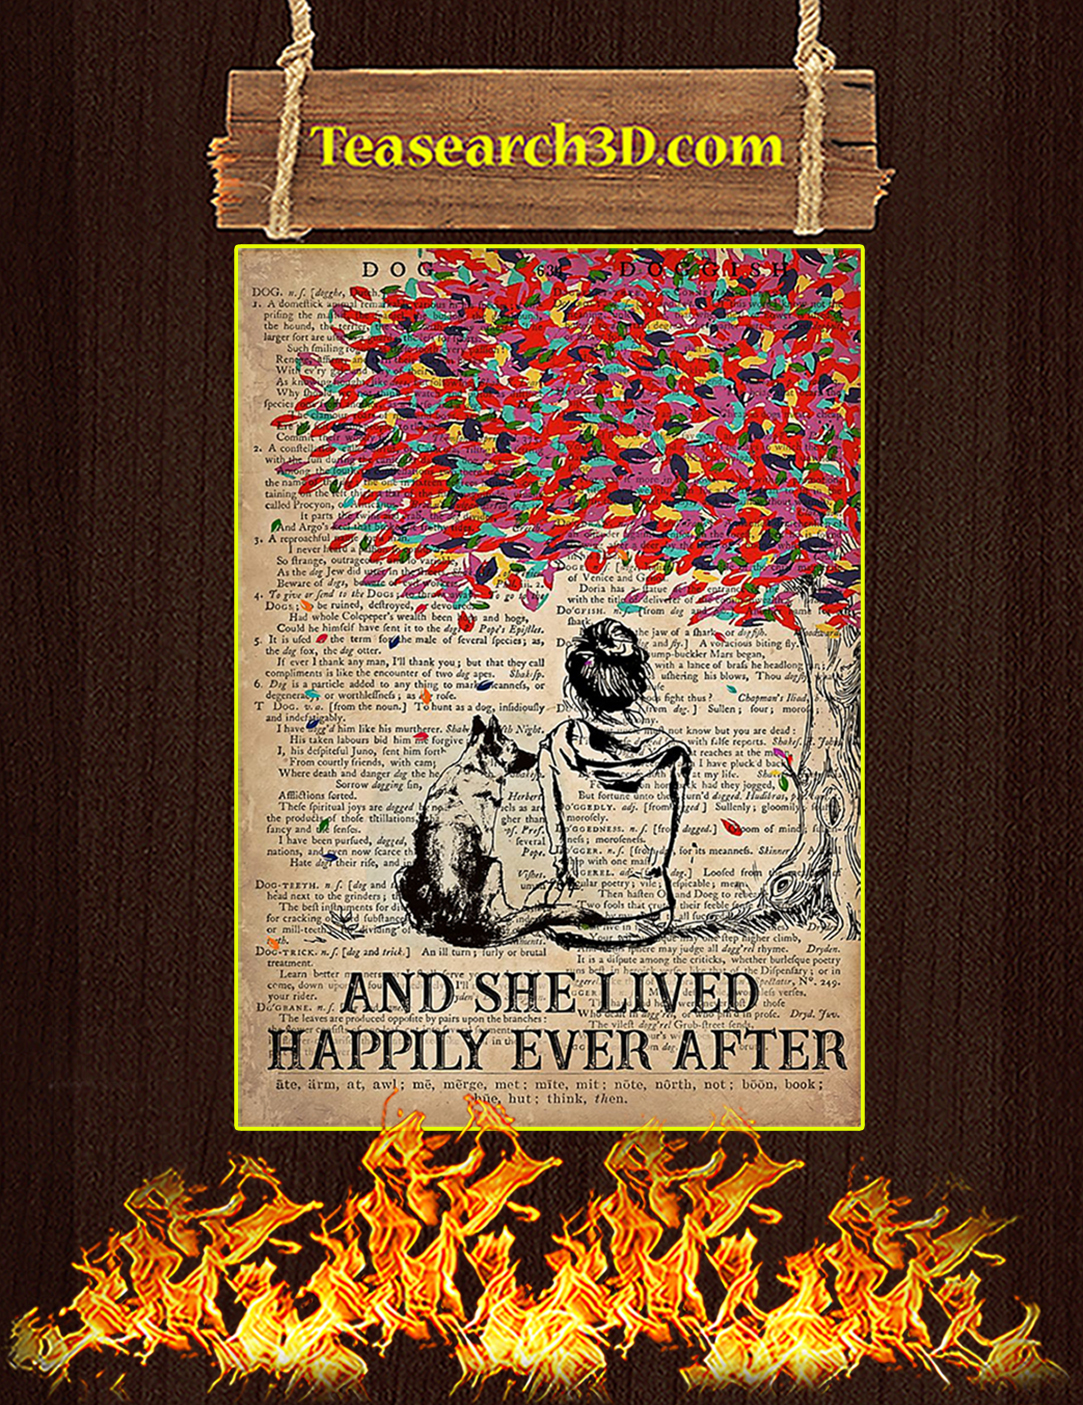 Dog K9 And she lived happily ever after poster A2